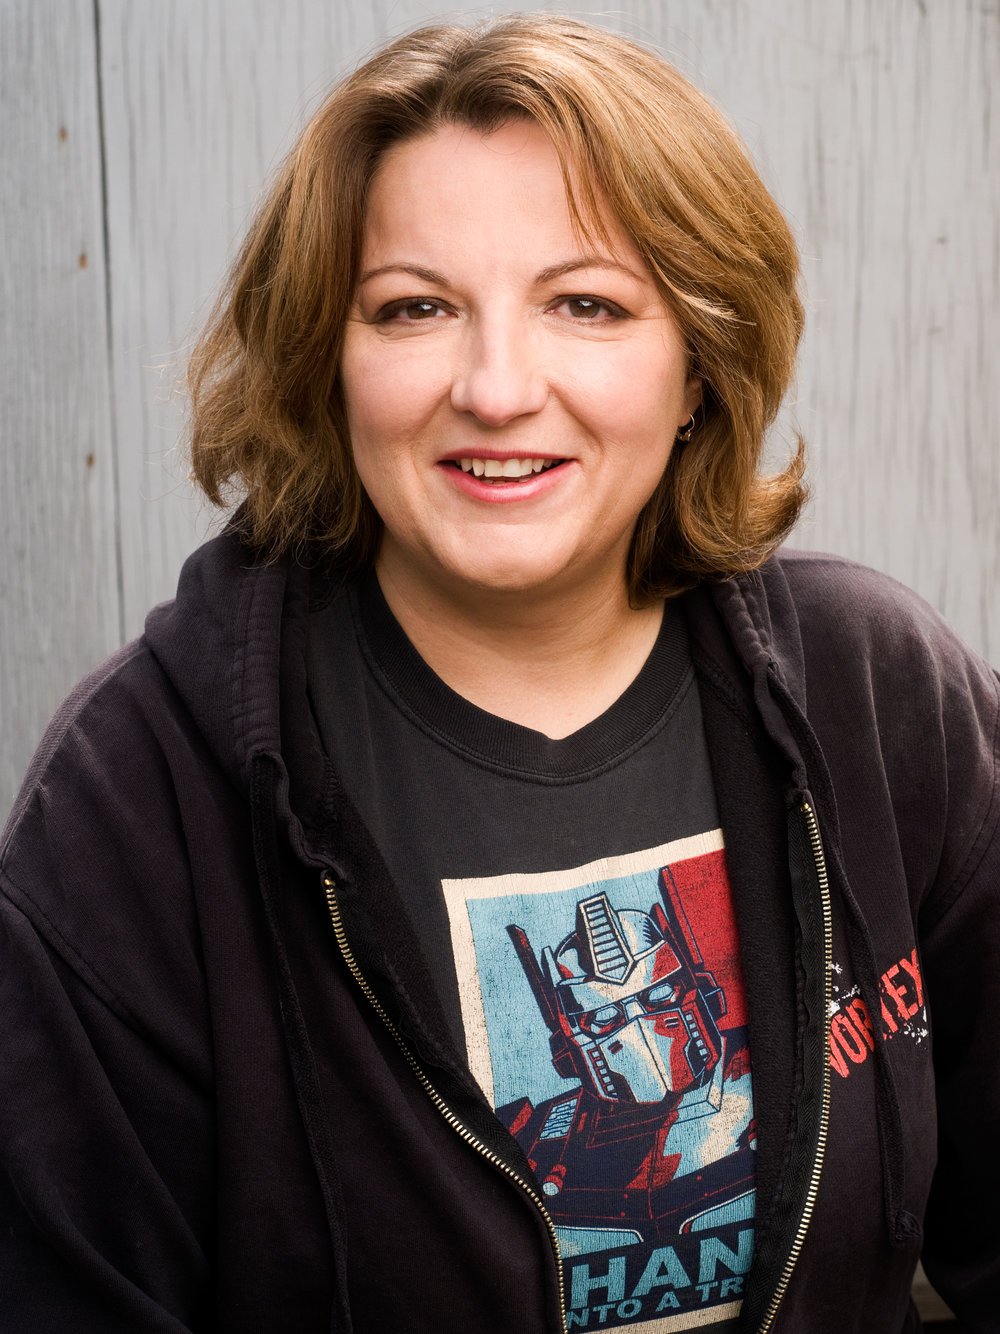 Jackie Kashian Headshot - USE.JPG